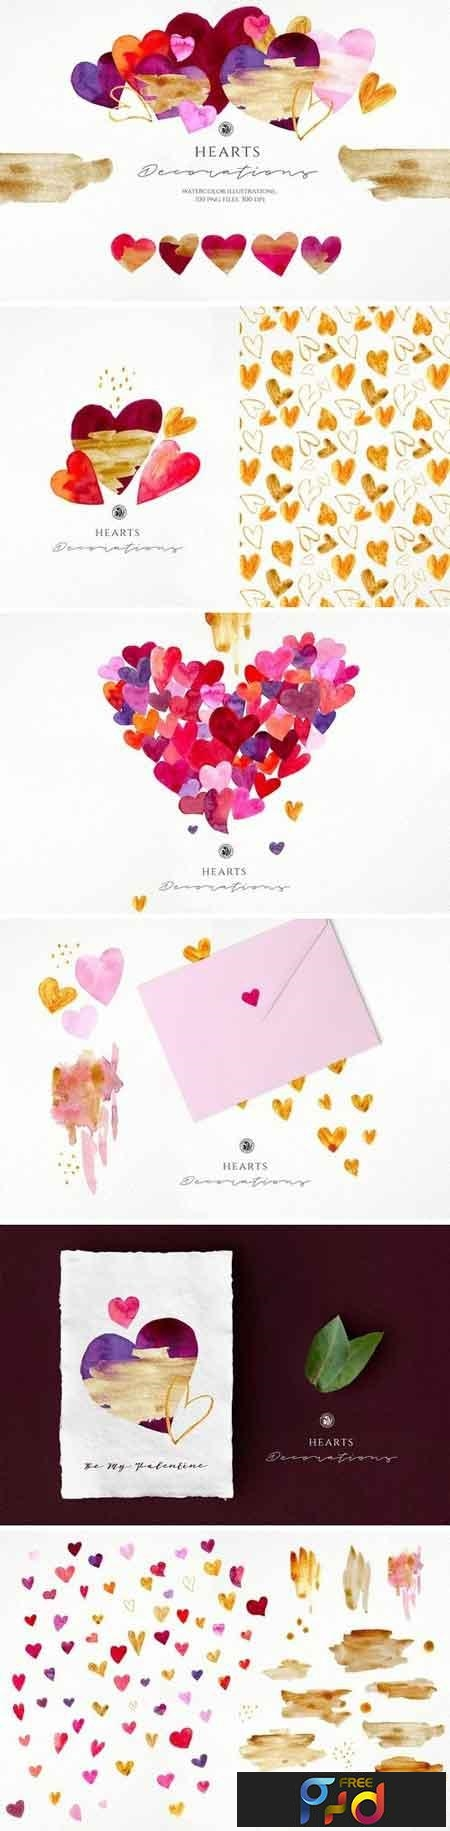 Hearts - watercolor illustrations 3221567 1